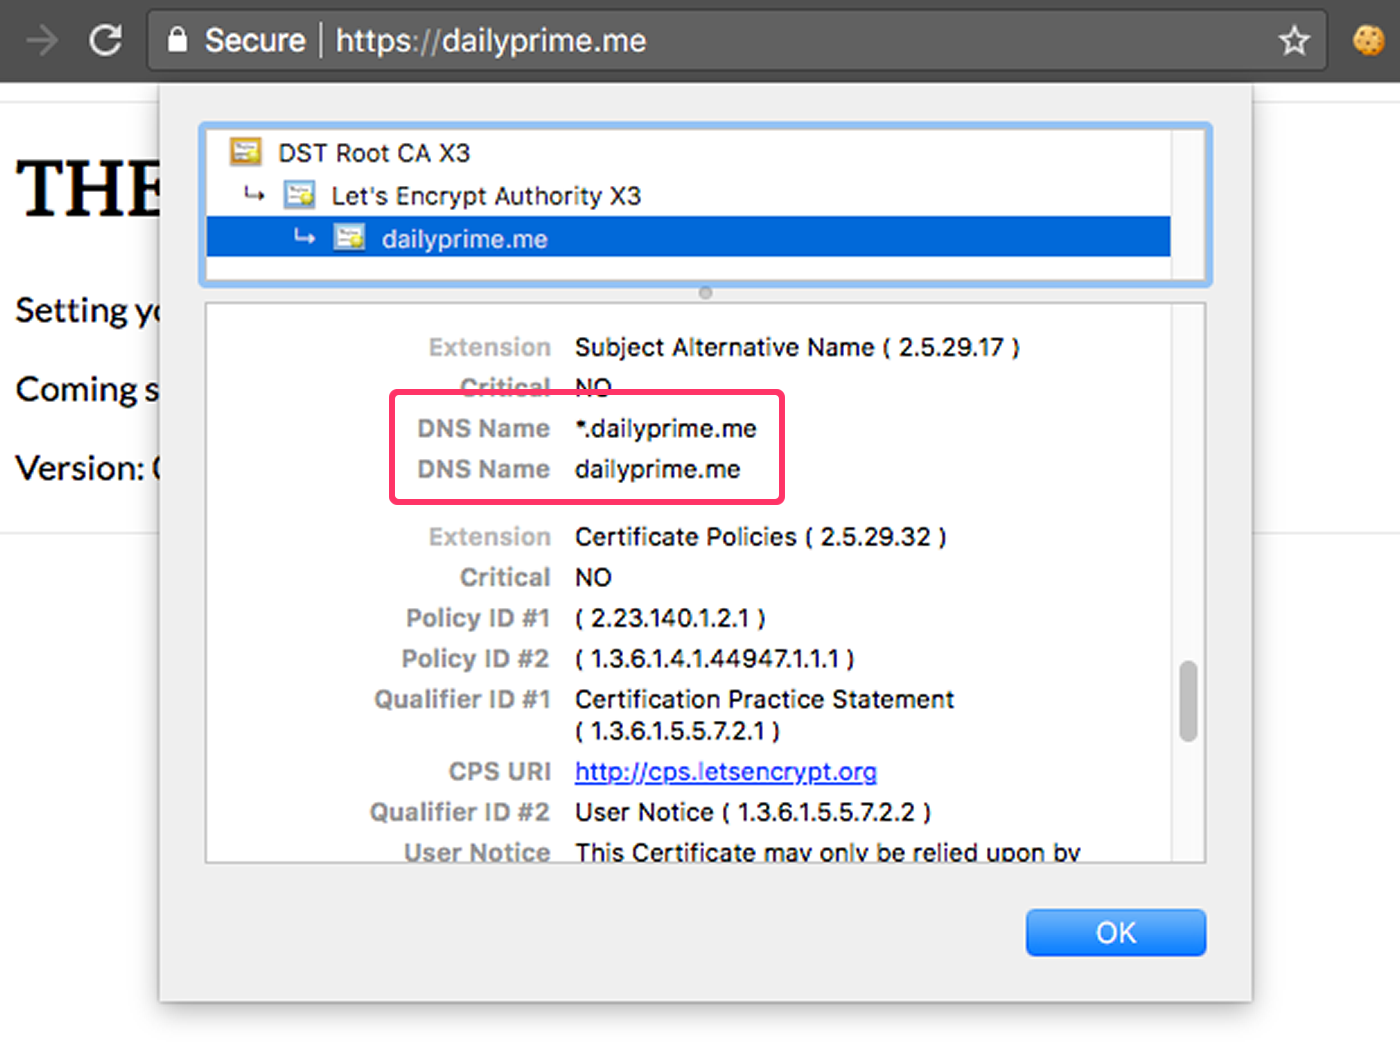 Obtaining A Wildcard SSL Certificate From LetsEncrypt Using The DNS